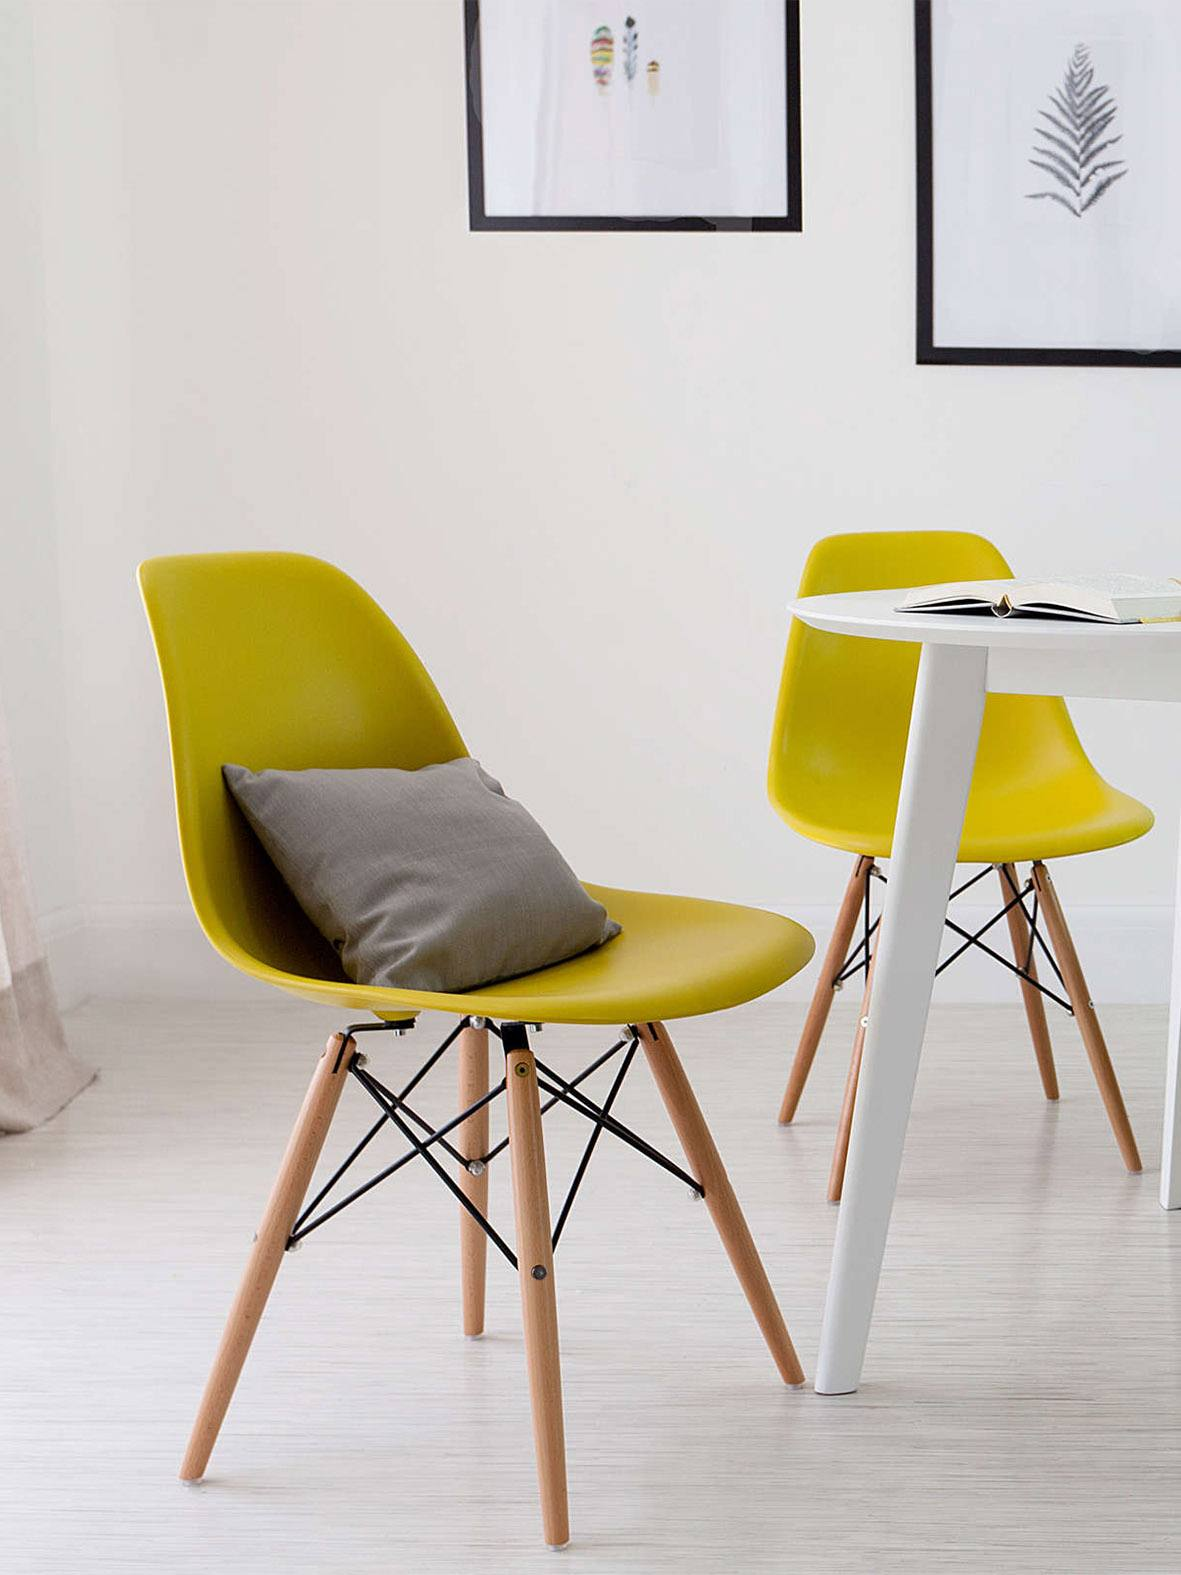 Discount Eames Style Dining Chairs from Danetti.